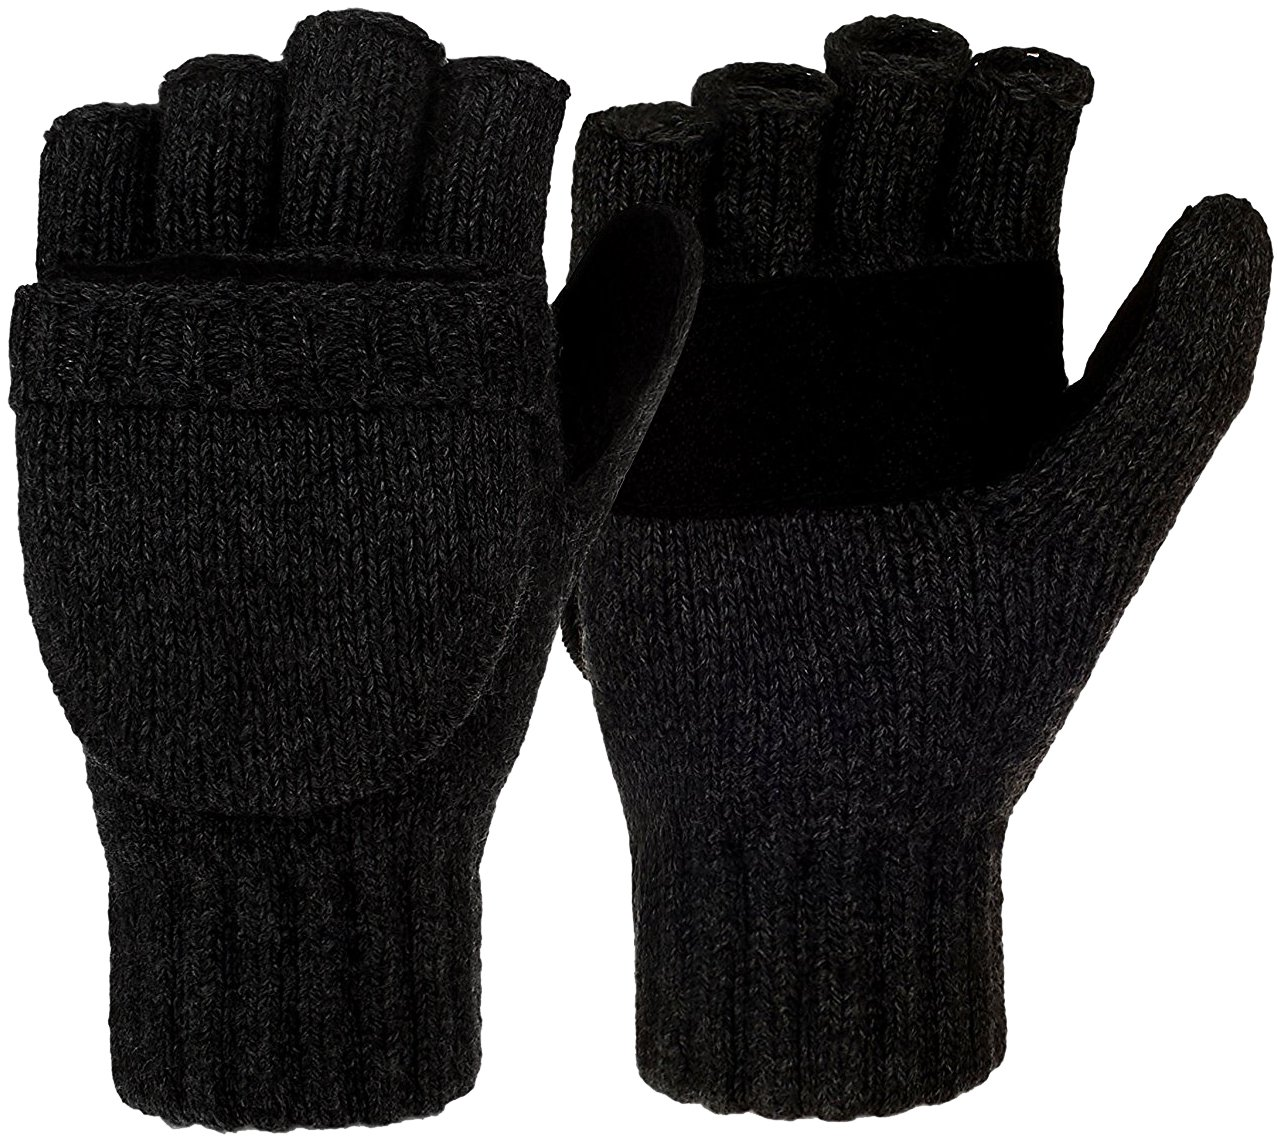 Korlon Winter Warm Wool Knitted Convertible Gloves Mittens with Mitten Cover, Black